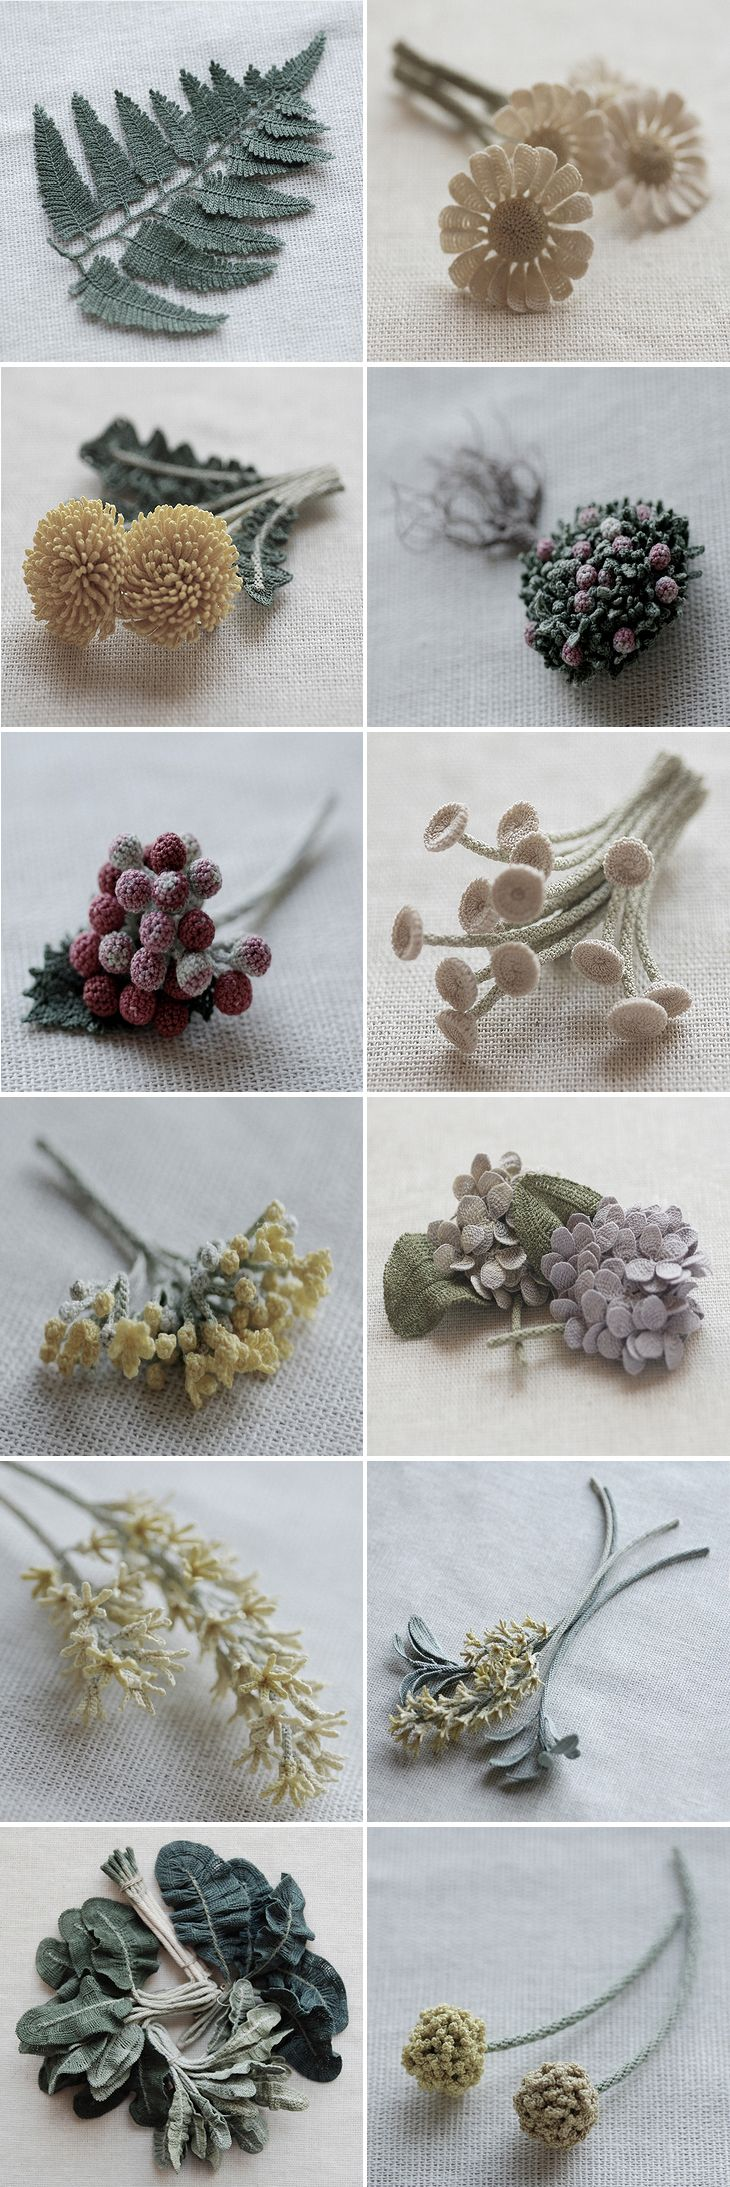 Itoamika Jung Jungs Fiber Art...these are crochet!!!